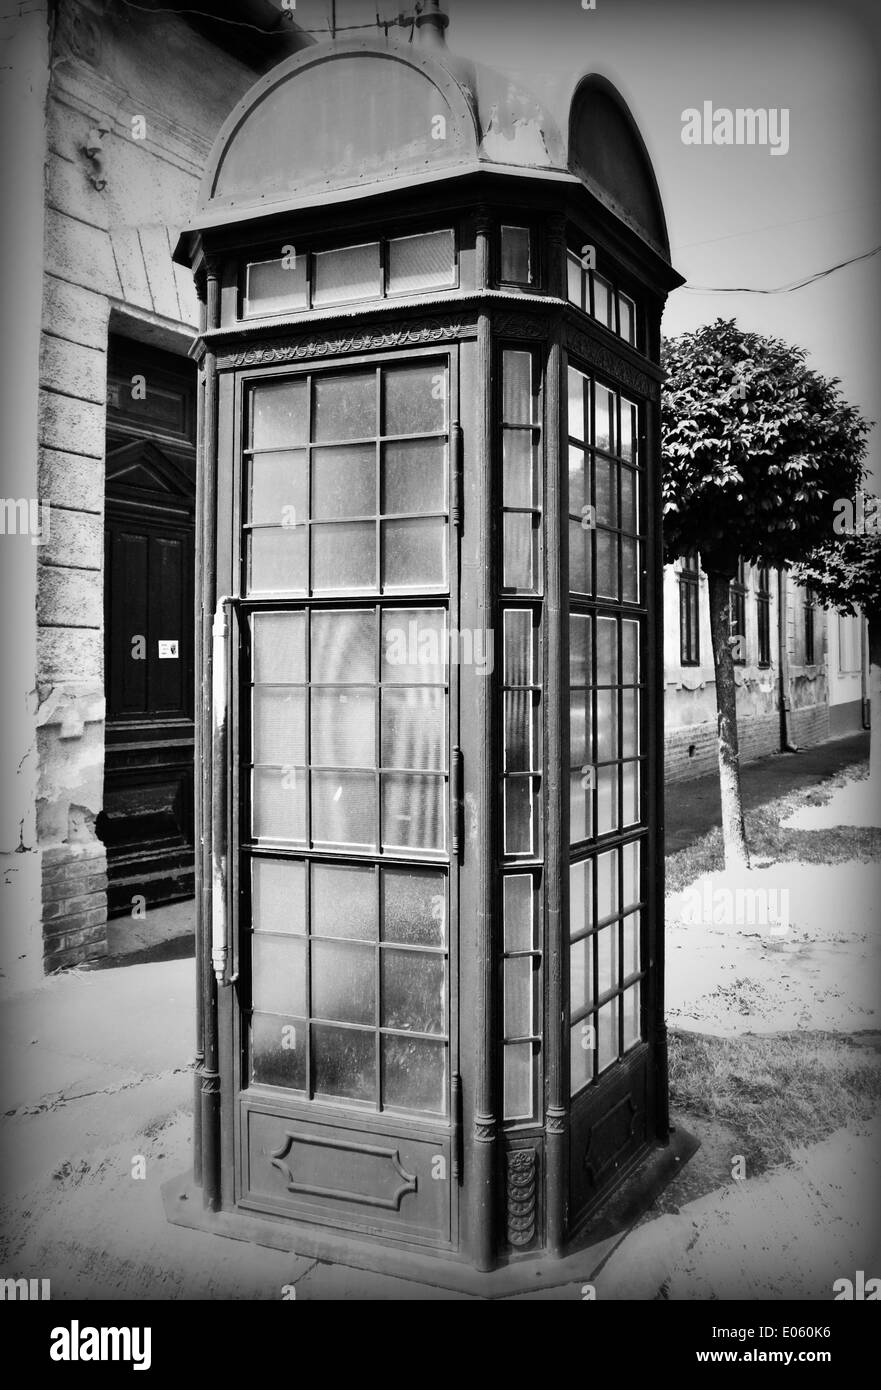 Vintage image of phone booth - Stock Image